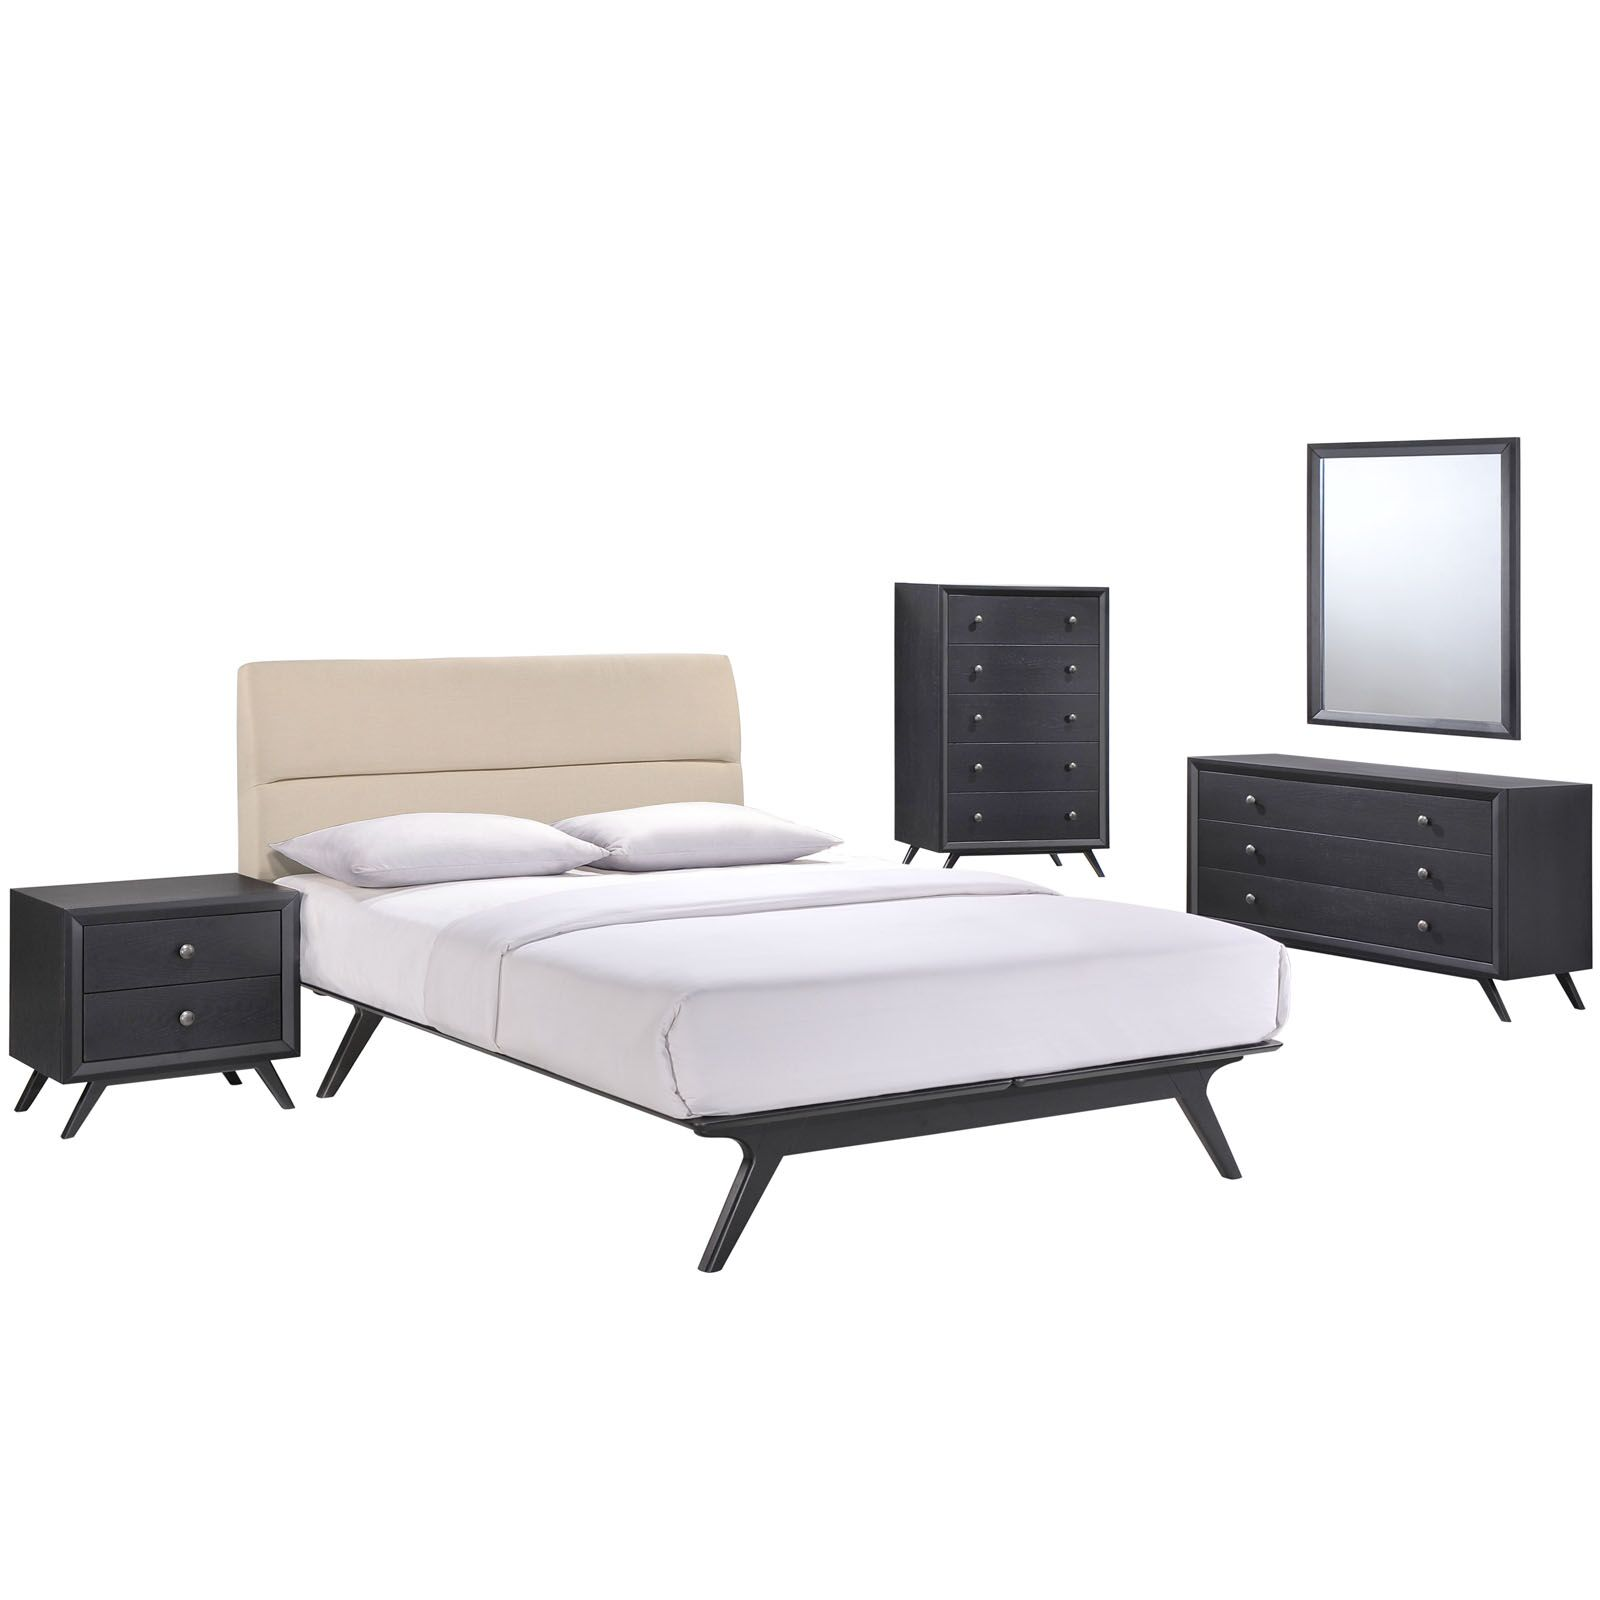 Nashua Queen Platform 5 Piece Bedroom Set Finish: Beige